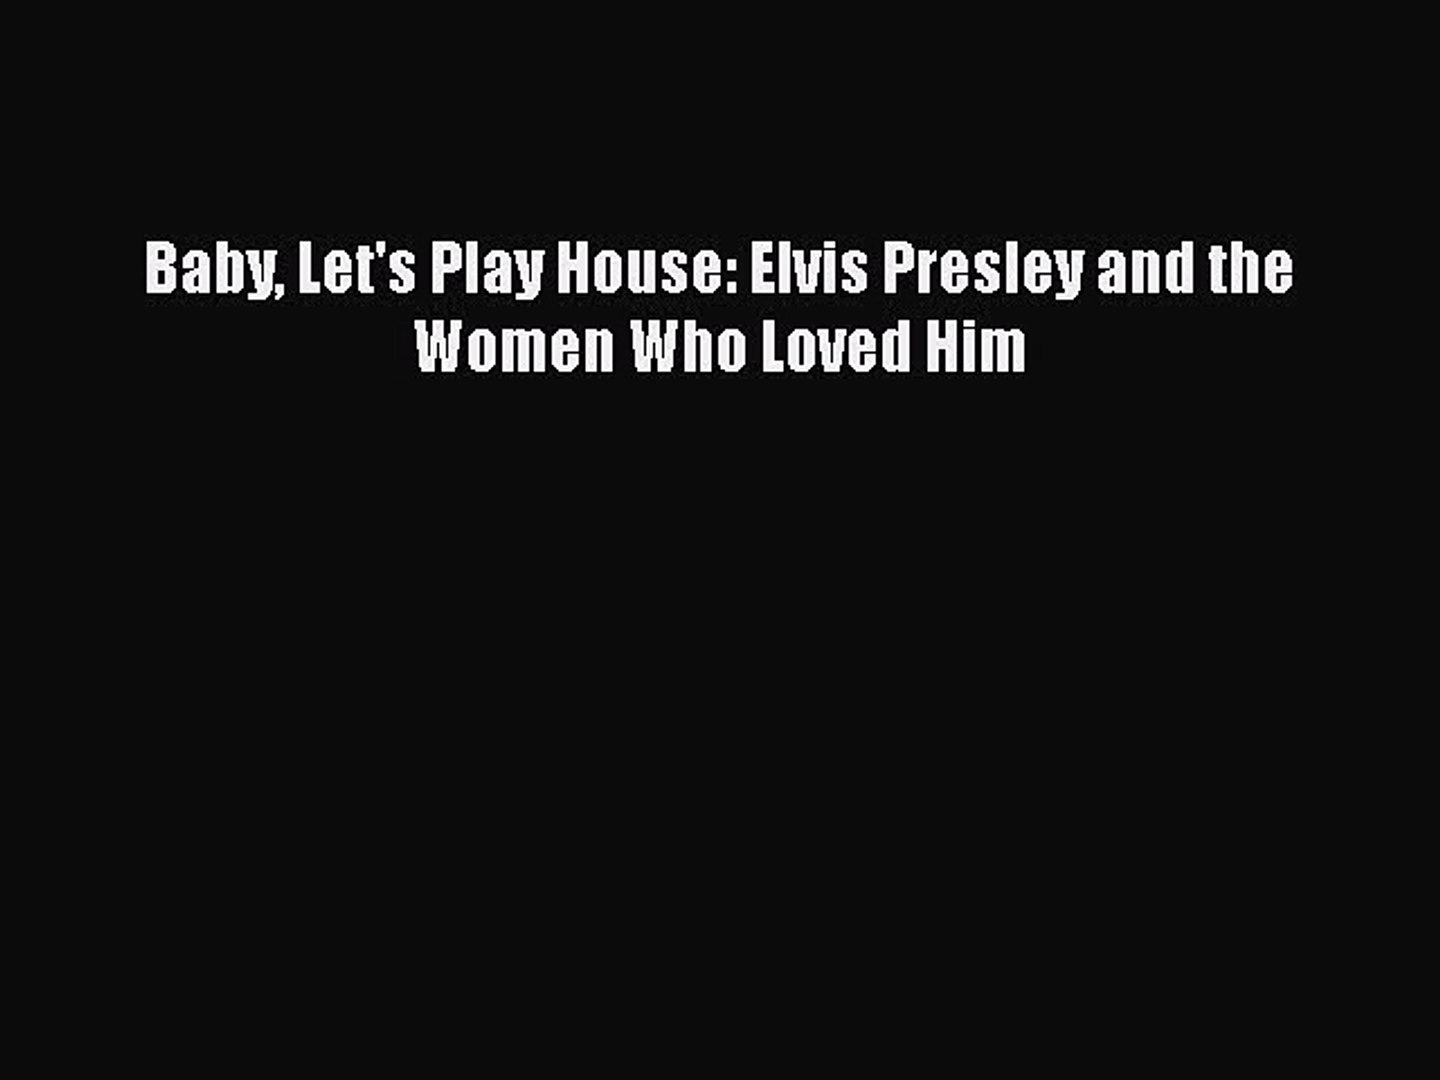 Download Baby Let's Play House: Elvis Presley and the Women Who Loved Him Ebook Free